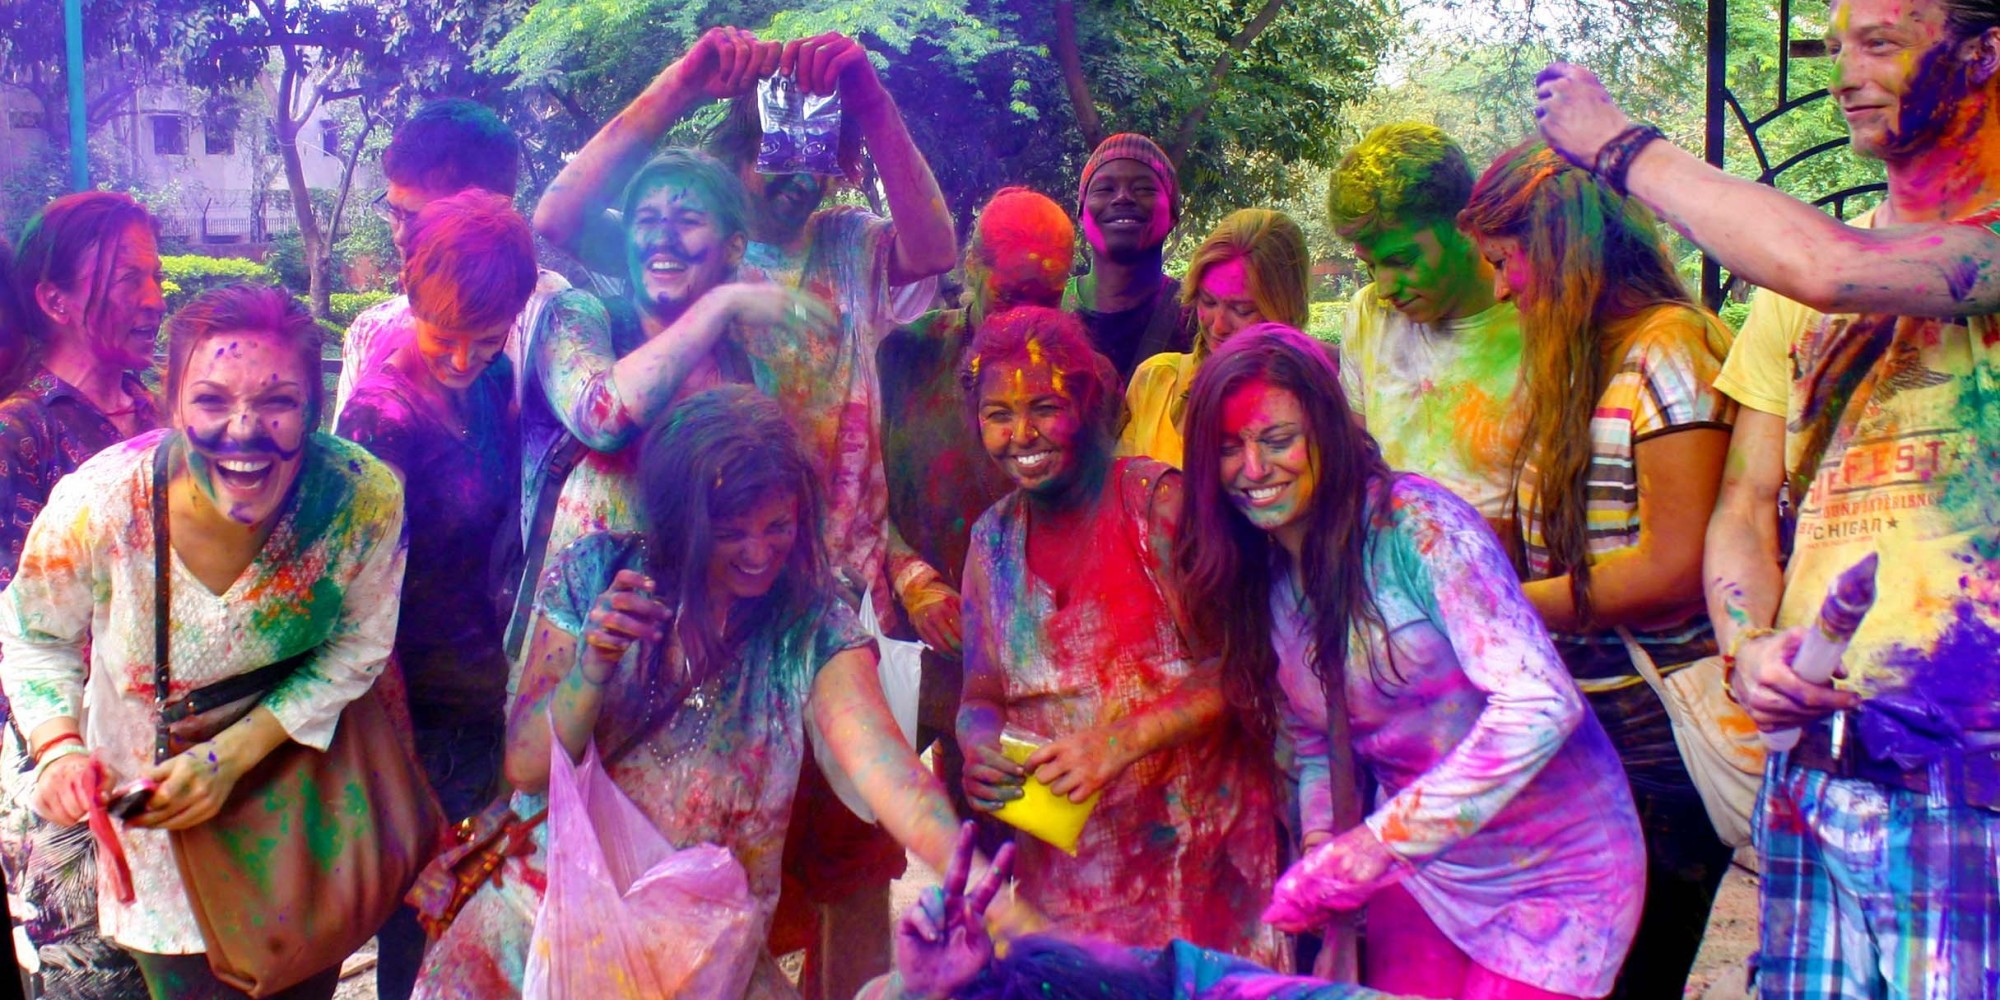 831 essay on holi festival to